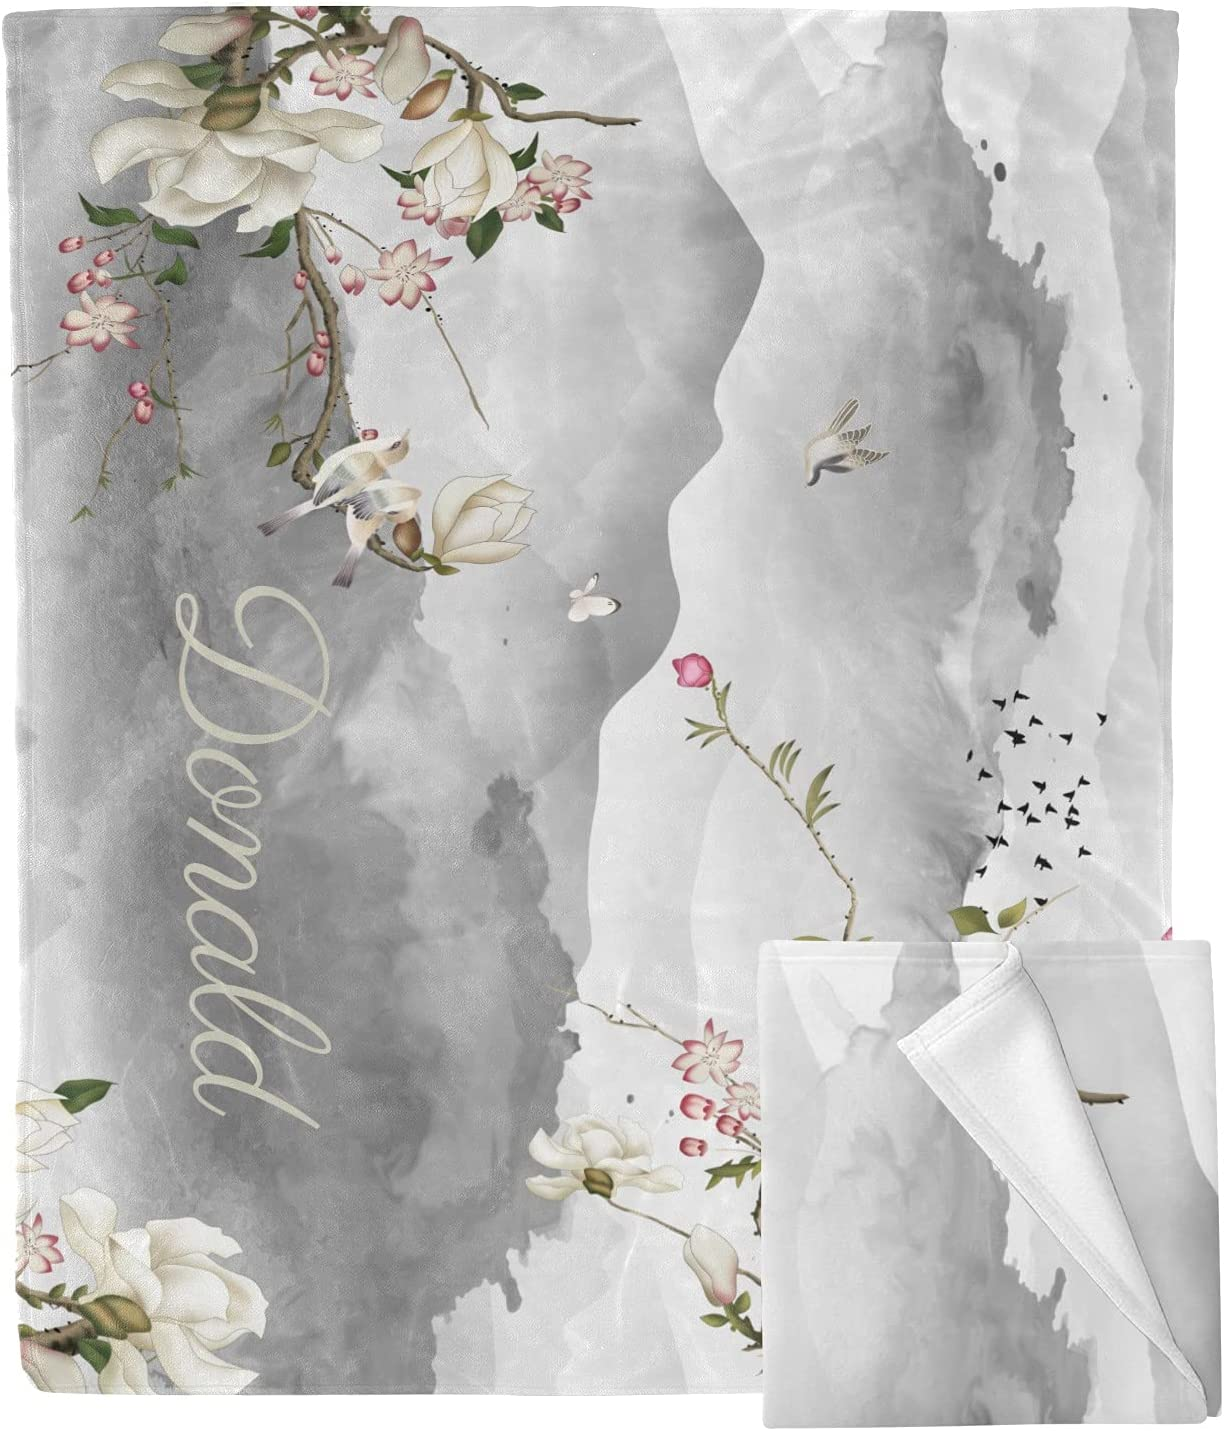 Personalized Mountain Hills Tree Branches Custom B Ranking TOP10 Blanket Throw New mail order